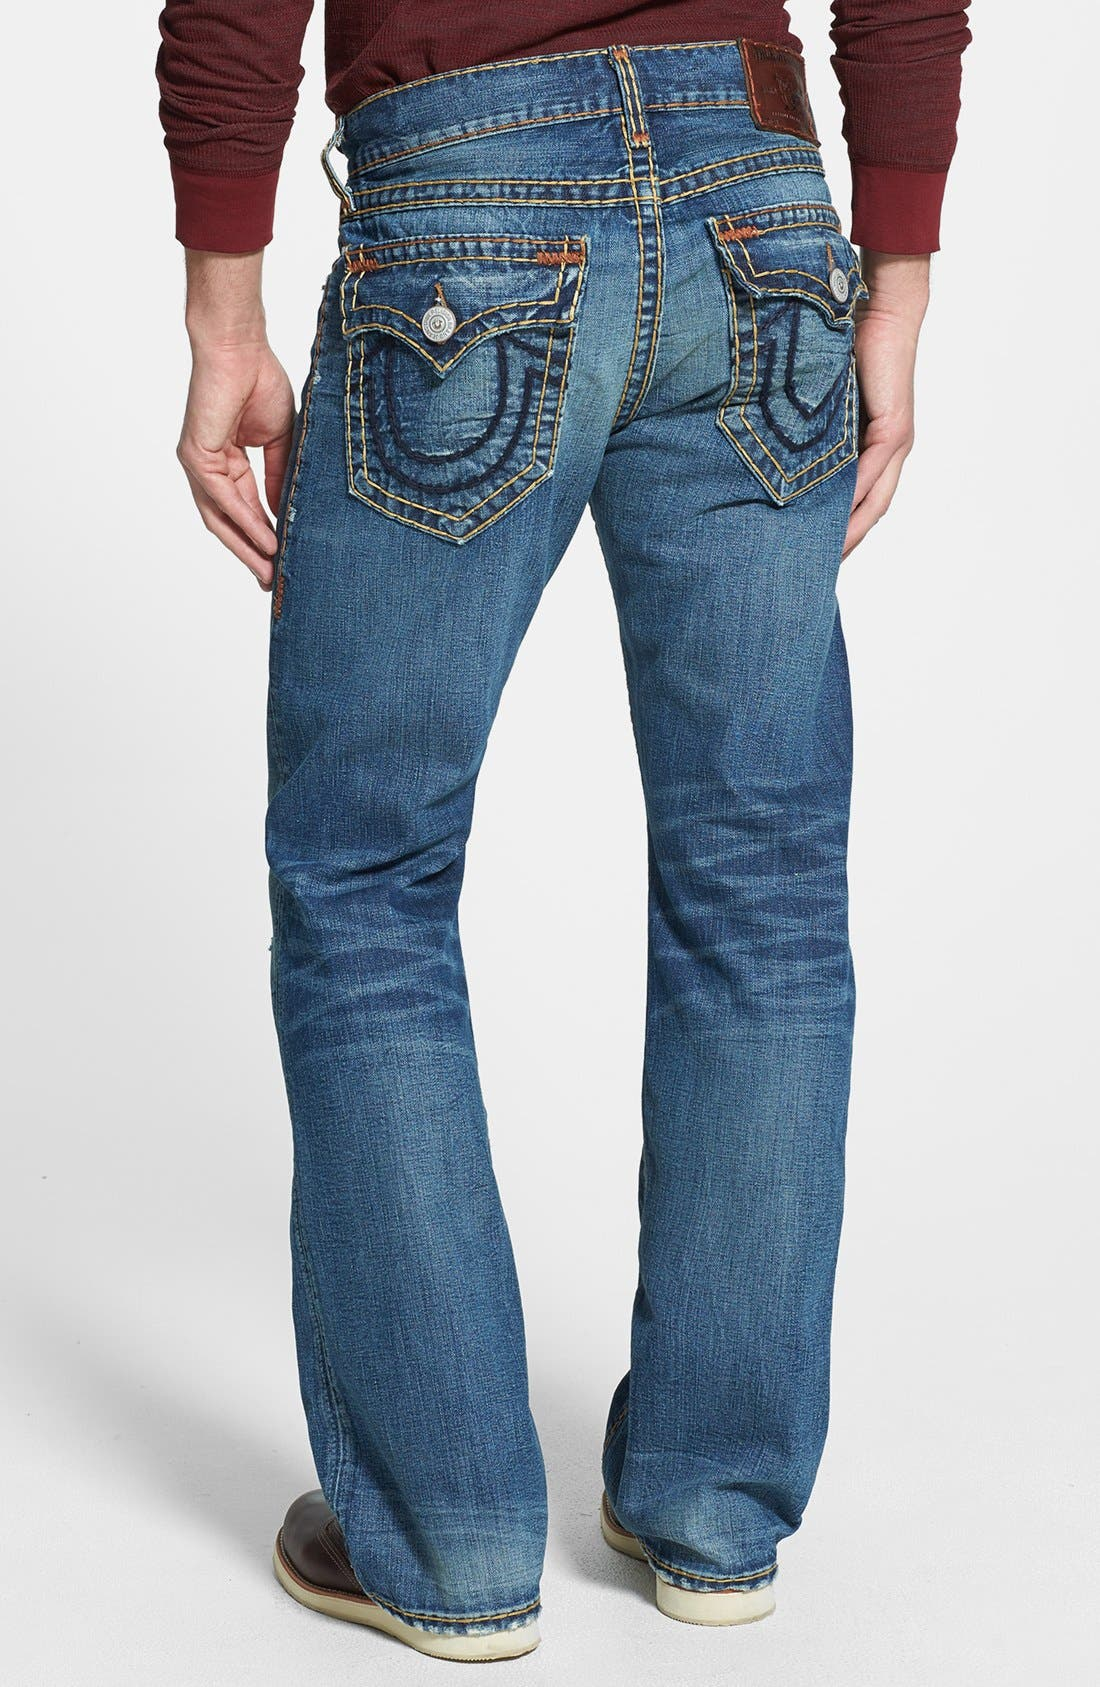 Alternate Image 1 Selected - True Religion Brand Jeans 'Billy' Bootcut Jeans (Bafm Hot Springs)